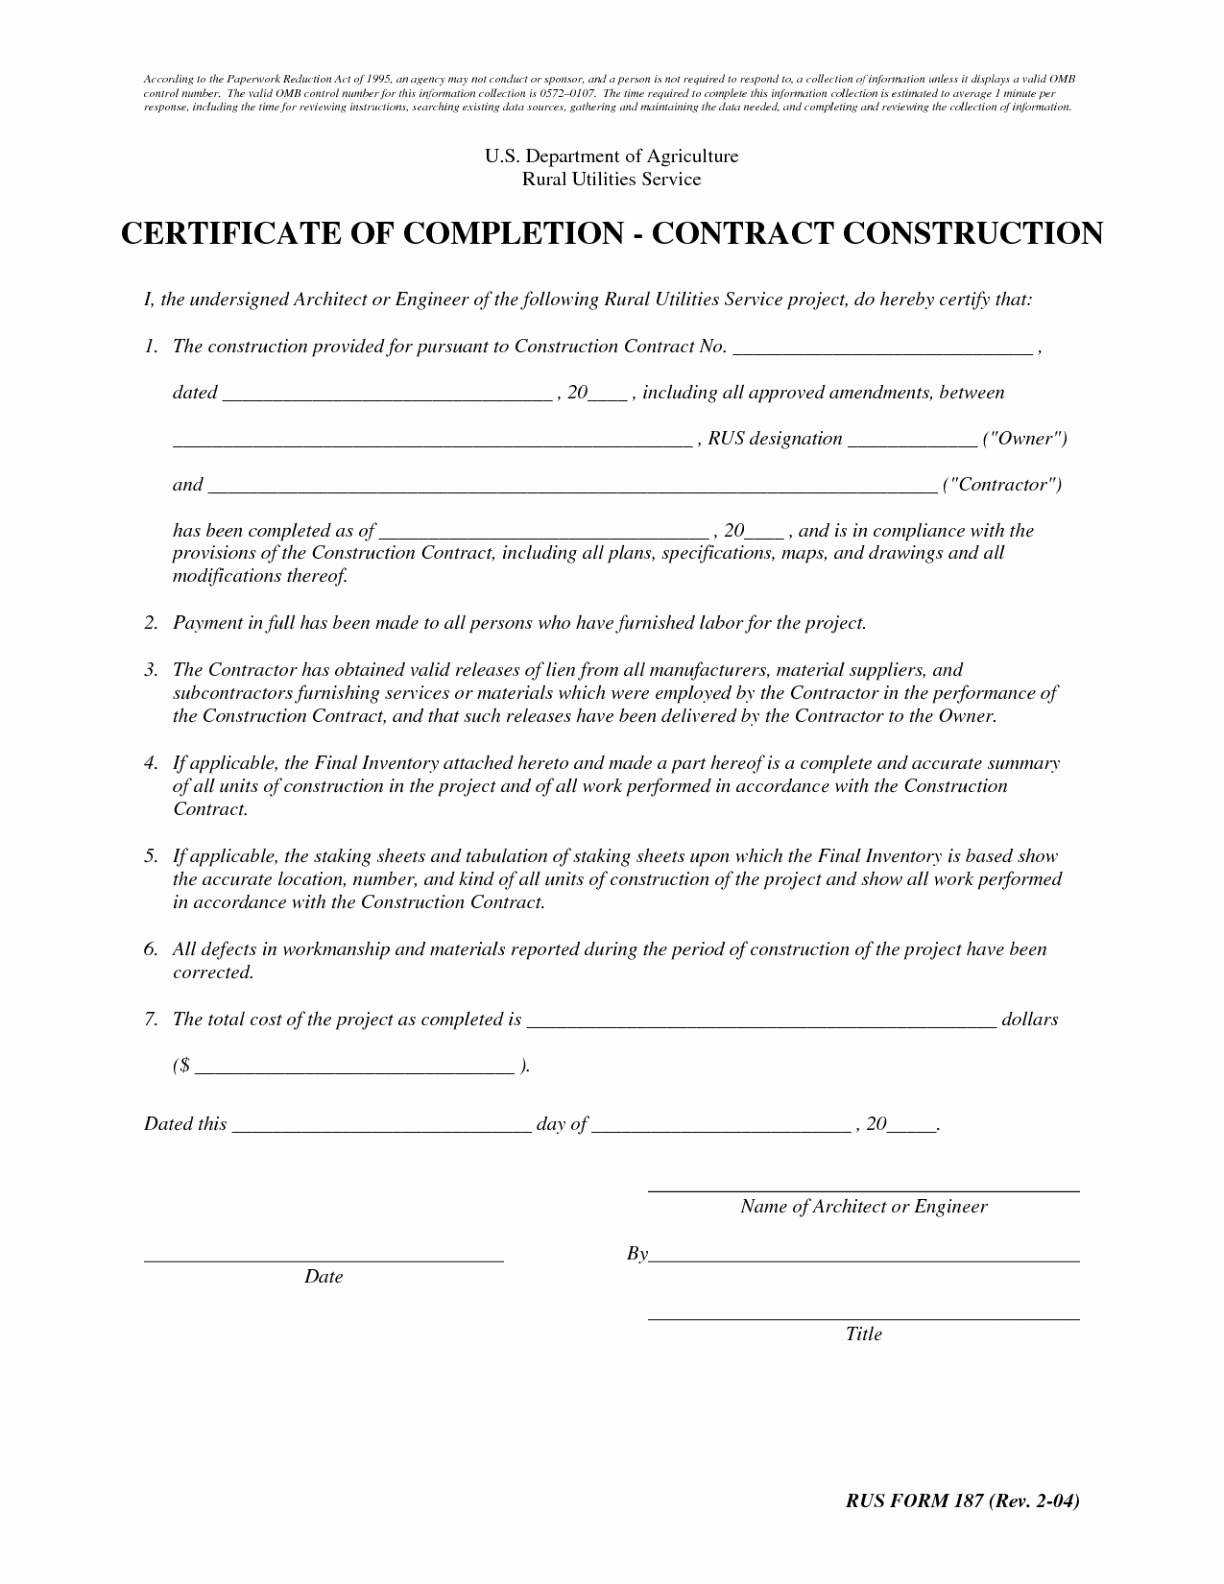 Sample Of Certificate Of Completion Of Construction Project For Certificate Of Completion Template Construction